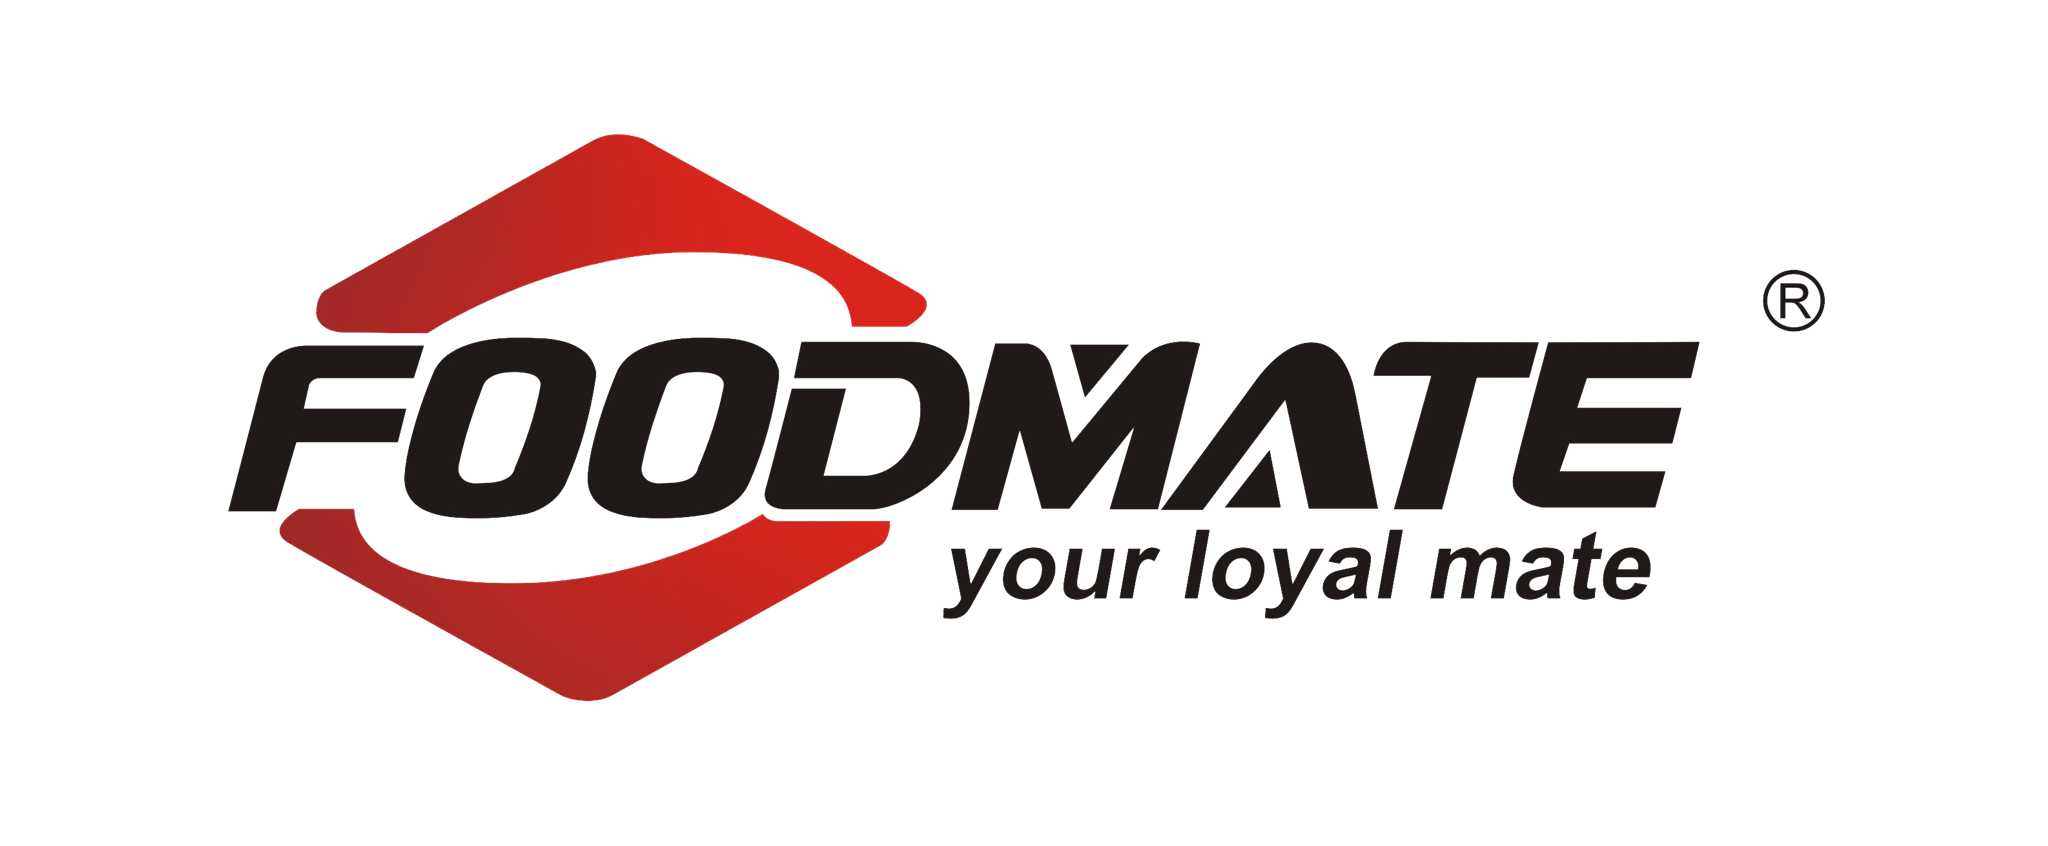 Foodmate Co., Ltd